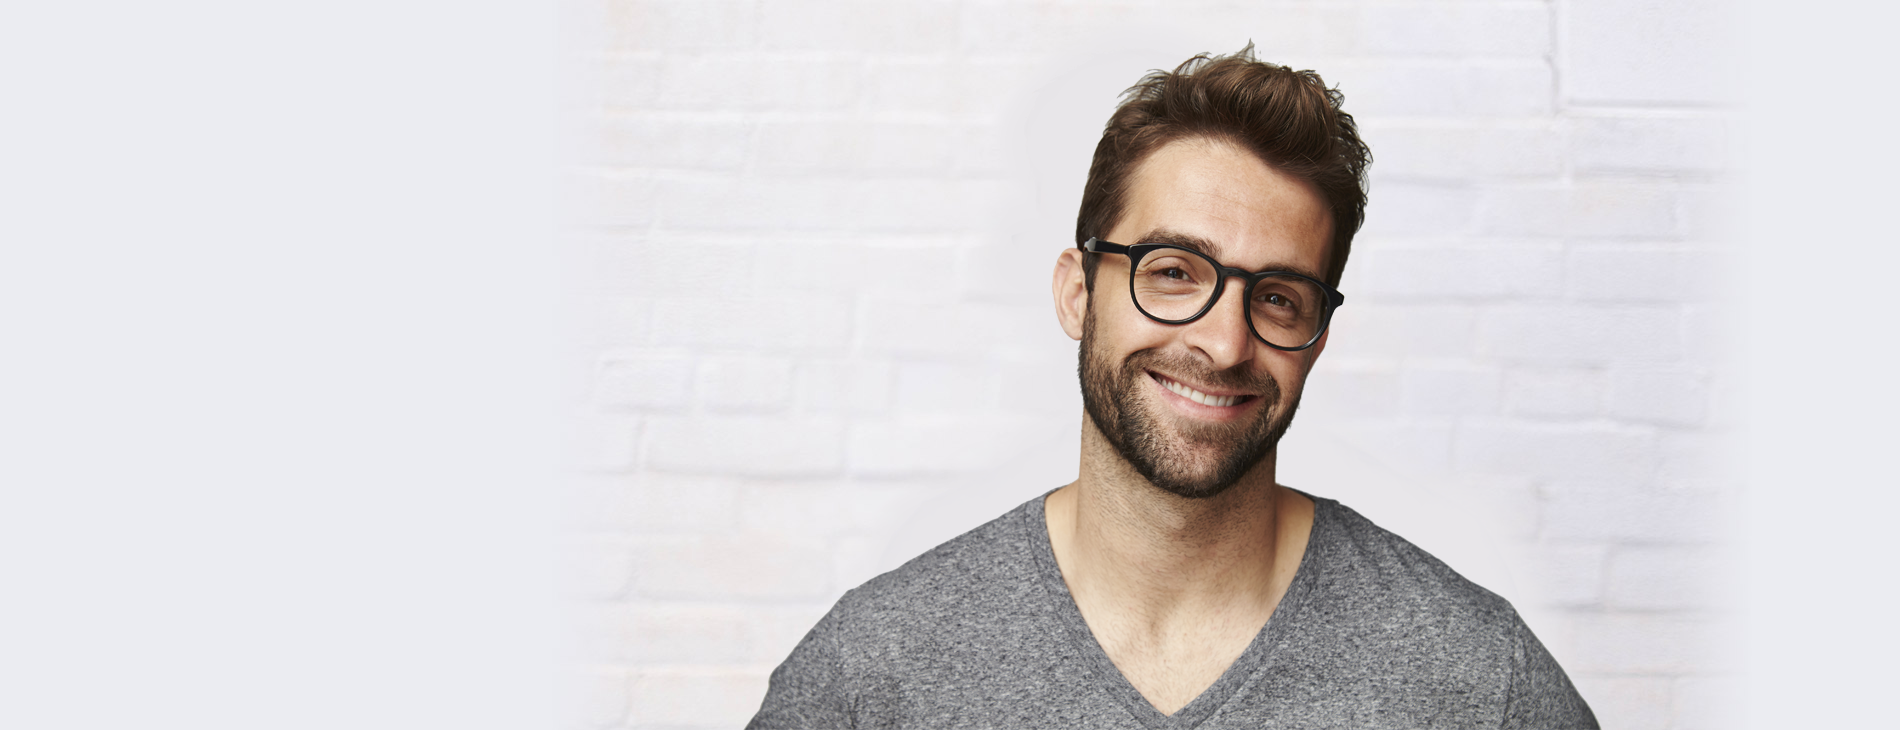 A man smiling and ready embrace the next generation of CRM with one of our tailored solutions